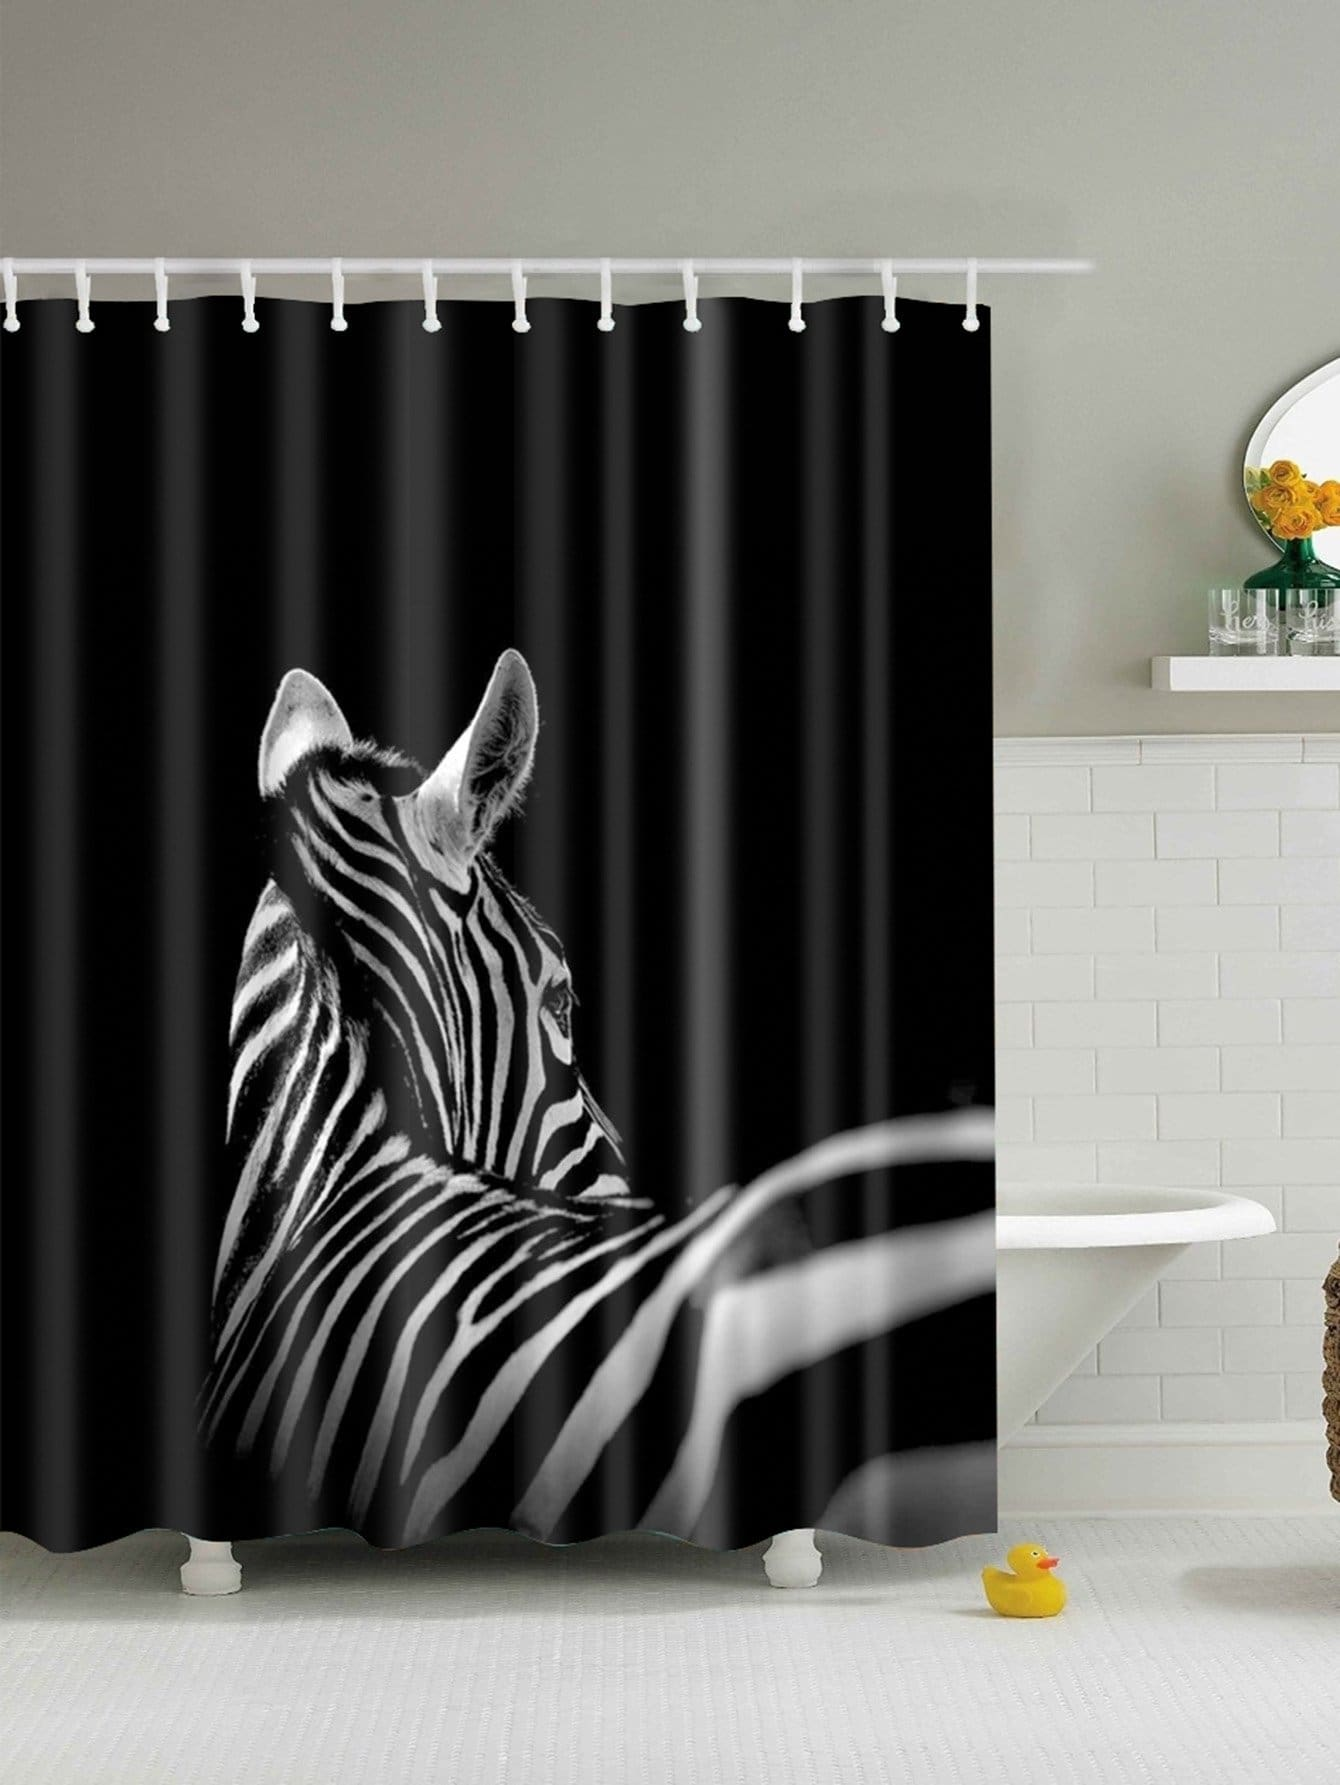 Zebra Print Shower Curtain 1pc With Hook 12pcs female silhouette art print shower curtain